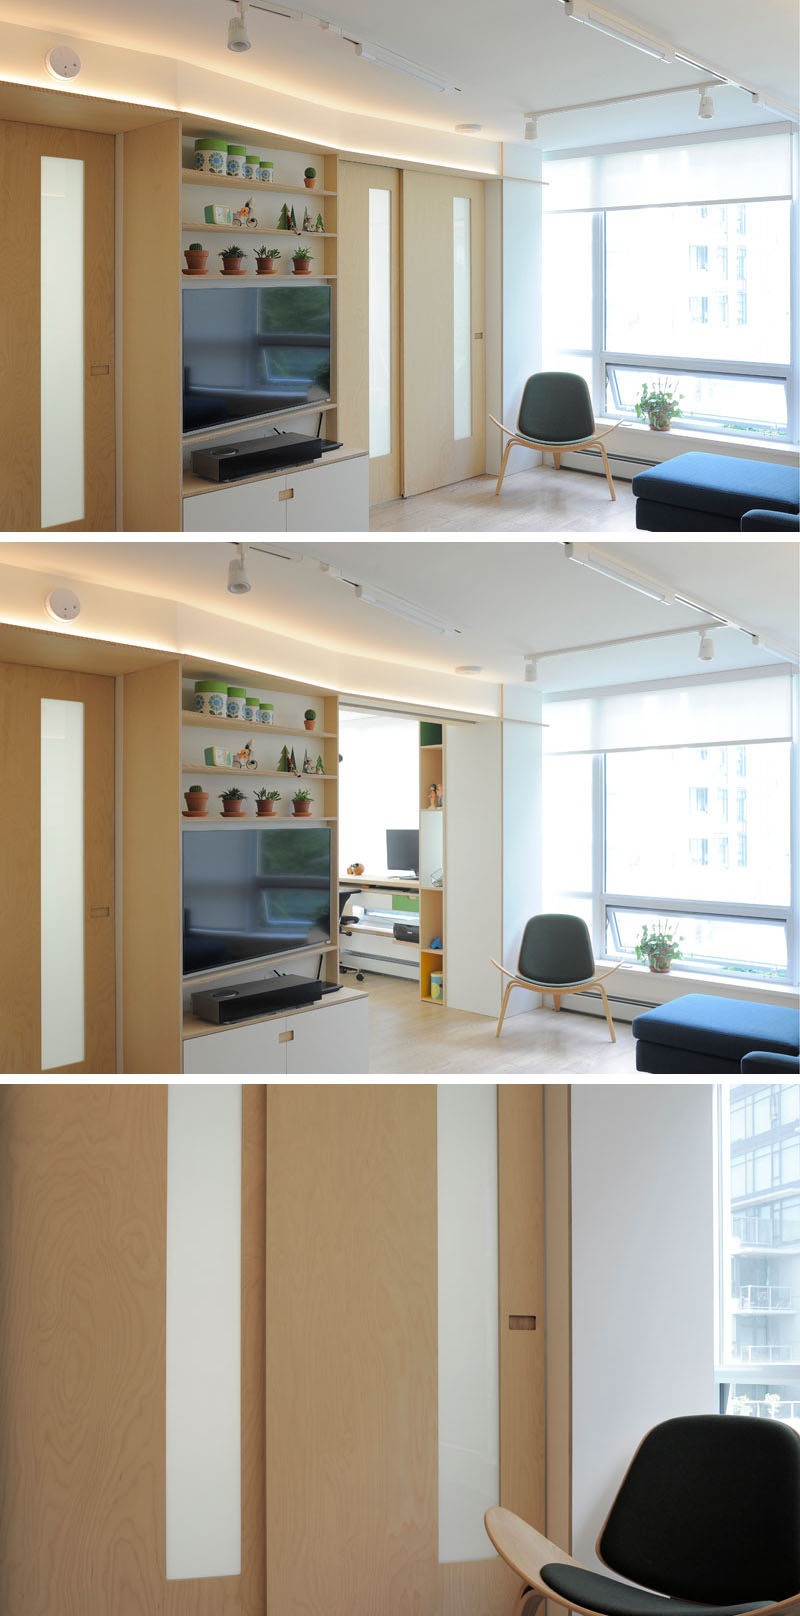 Sliding doors close off this home office in this small apartment to allow for privacy when working. #HomeOffice #SlidingDoors